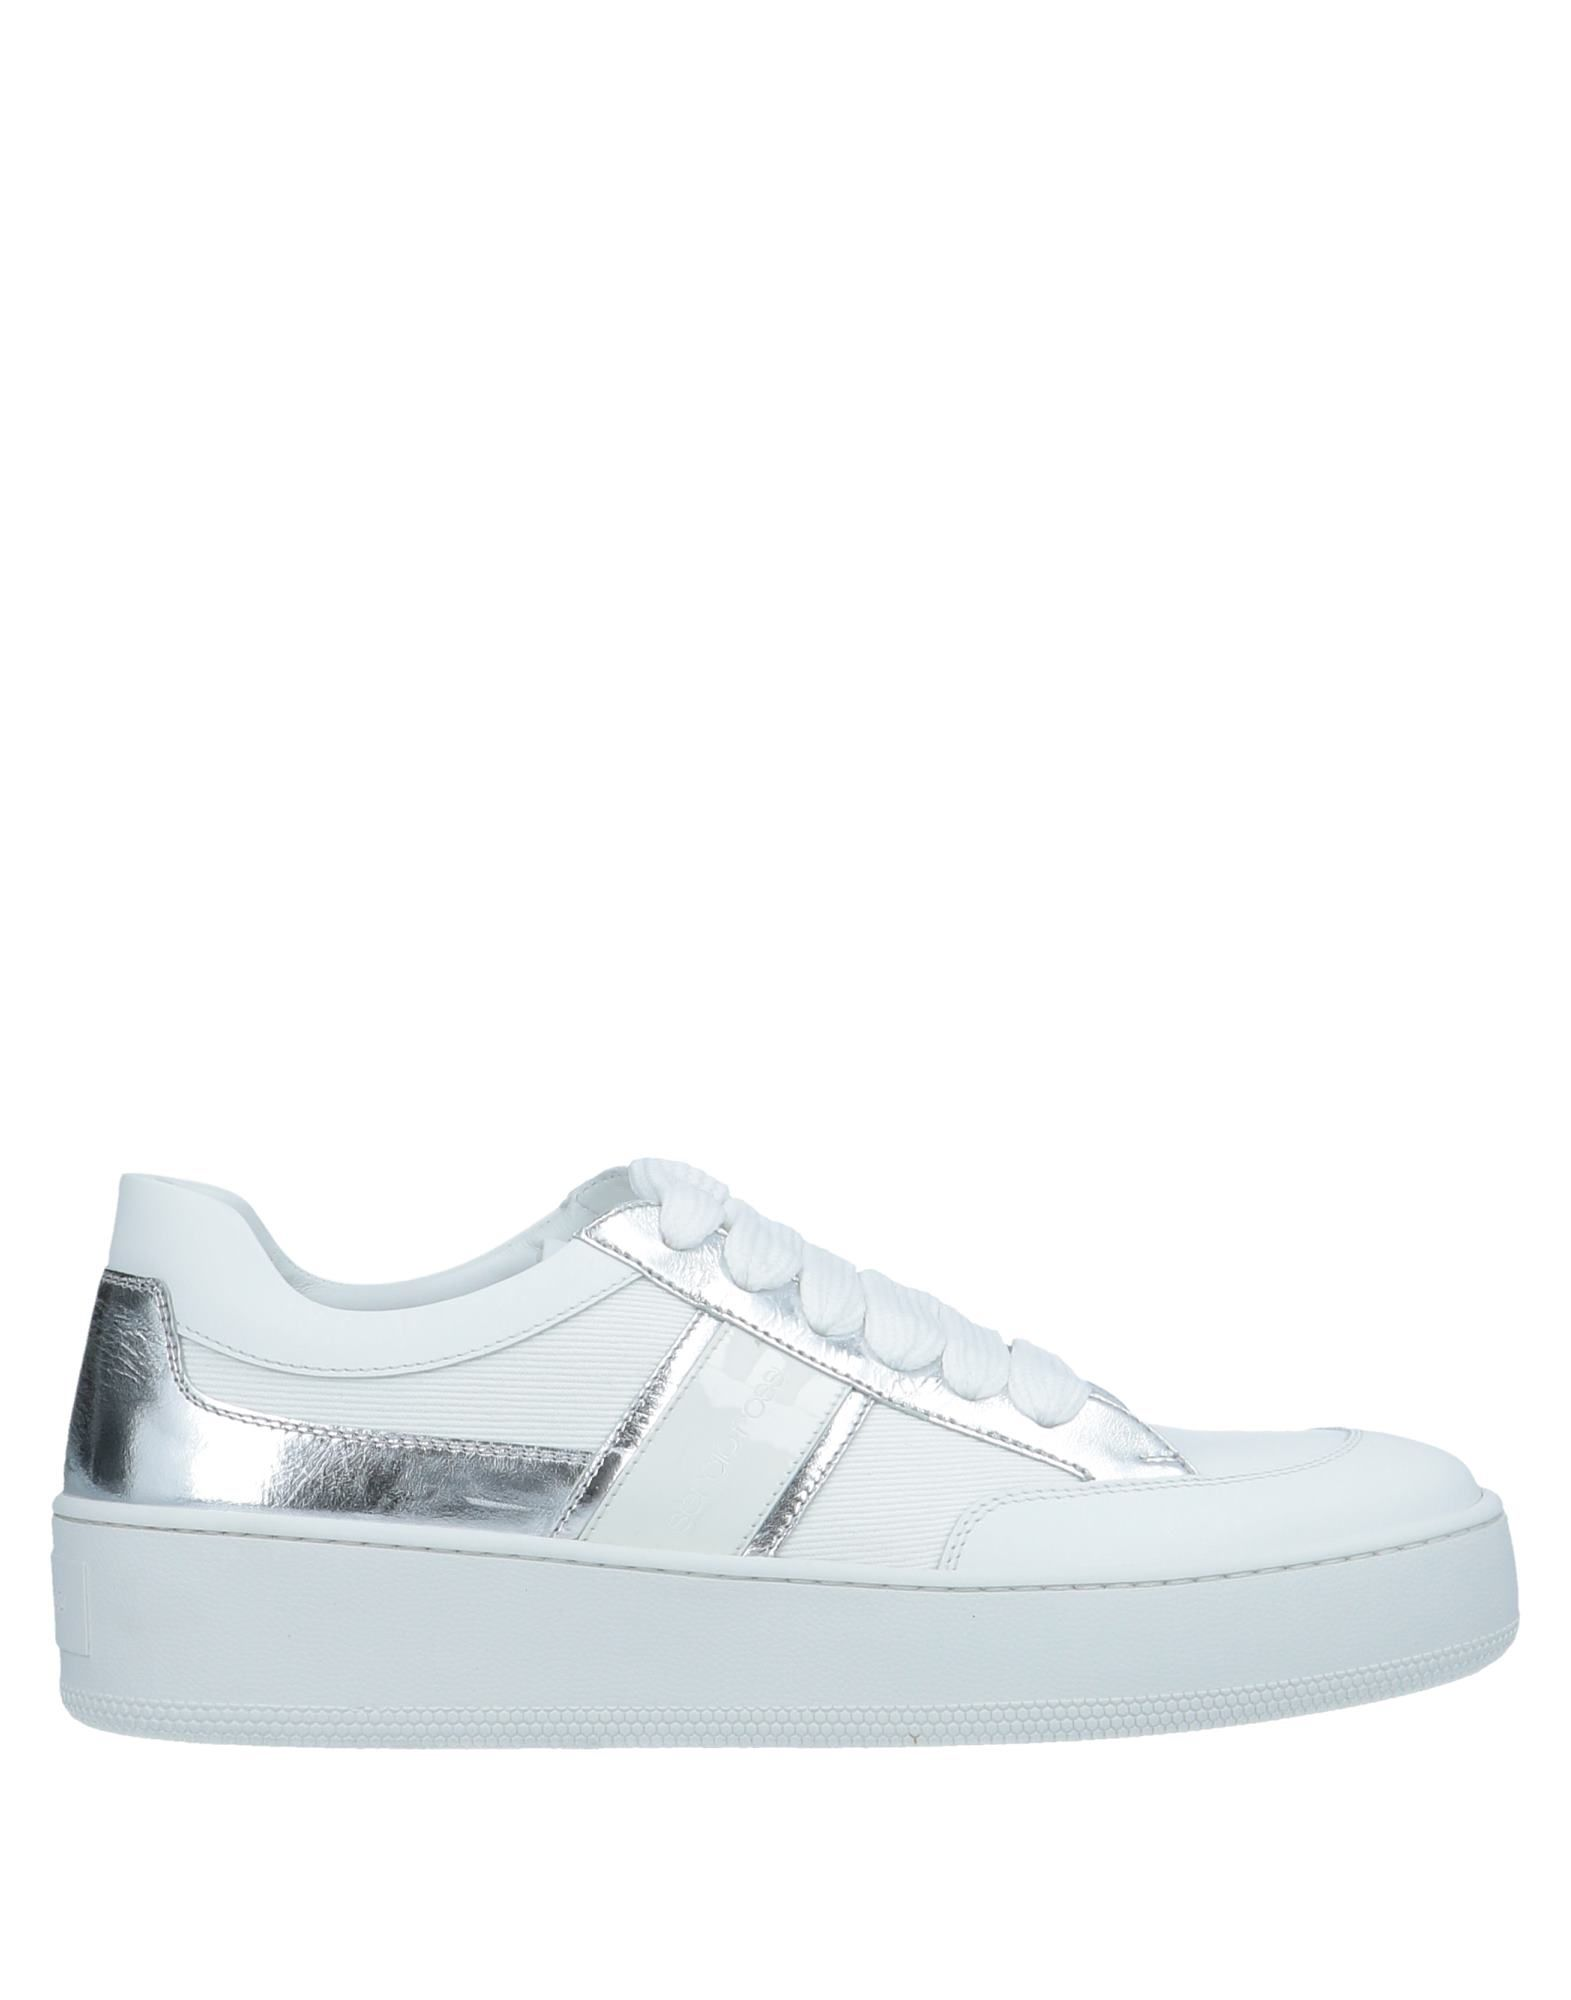 Sergio Rossi Sneakers - Women Sergio Rossi Sneakers Kingdom online on  United Kingdom Sneakers - 11567896NU da5950